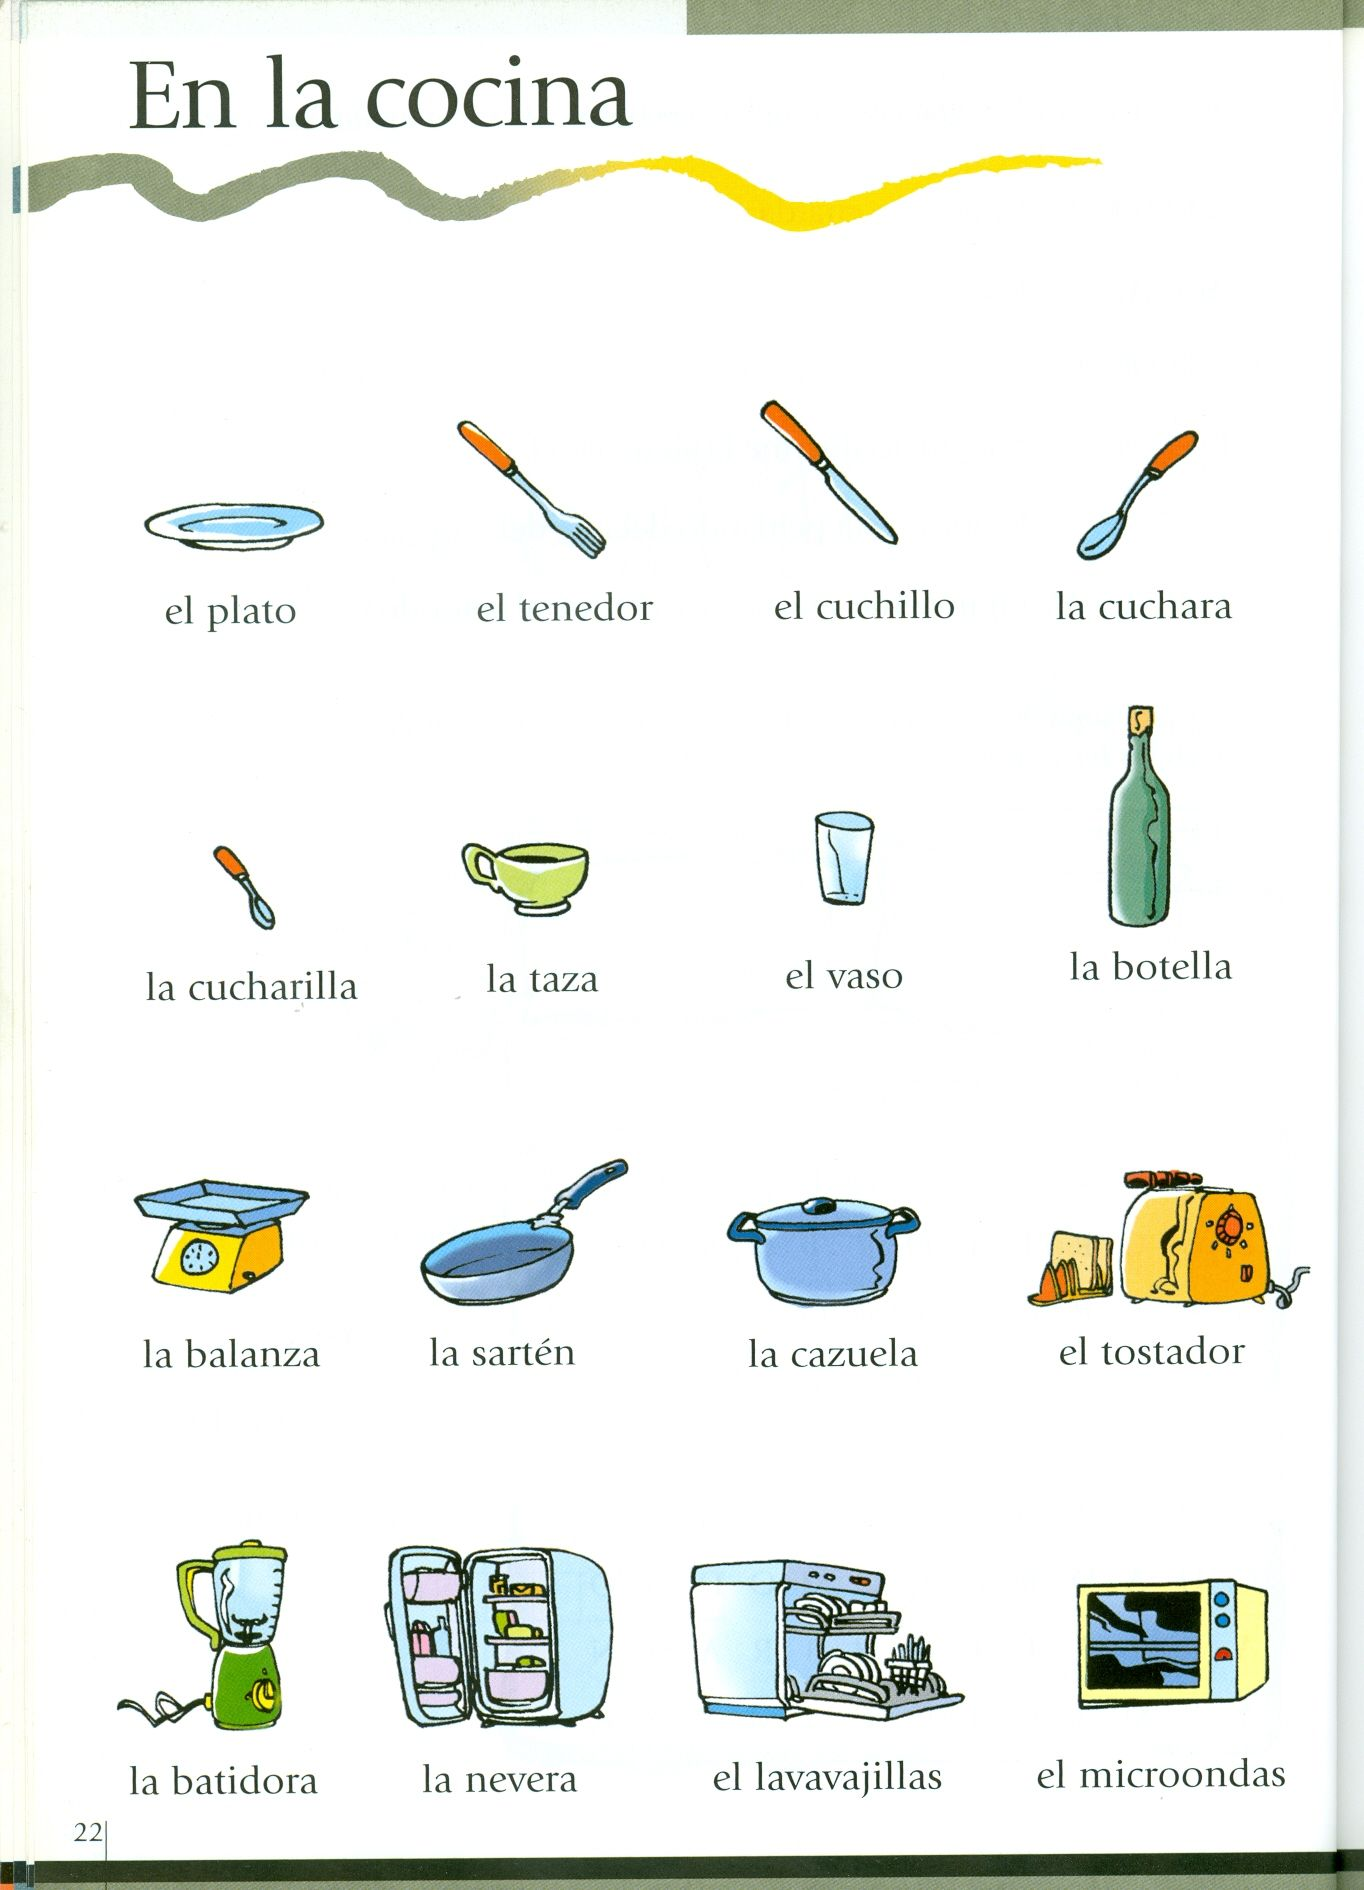 Vocabulario De Cocina En Ingles En La Cocina Vocabulario Español Spanish Vocabulary